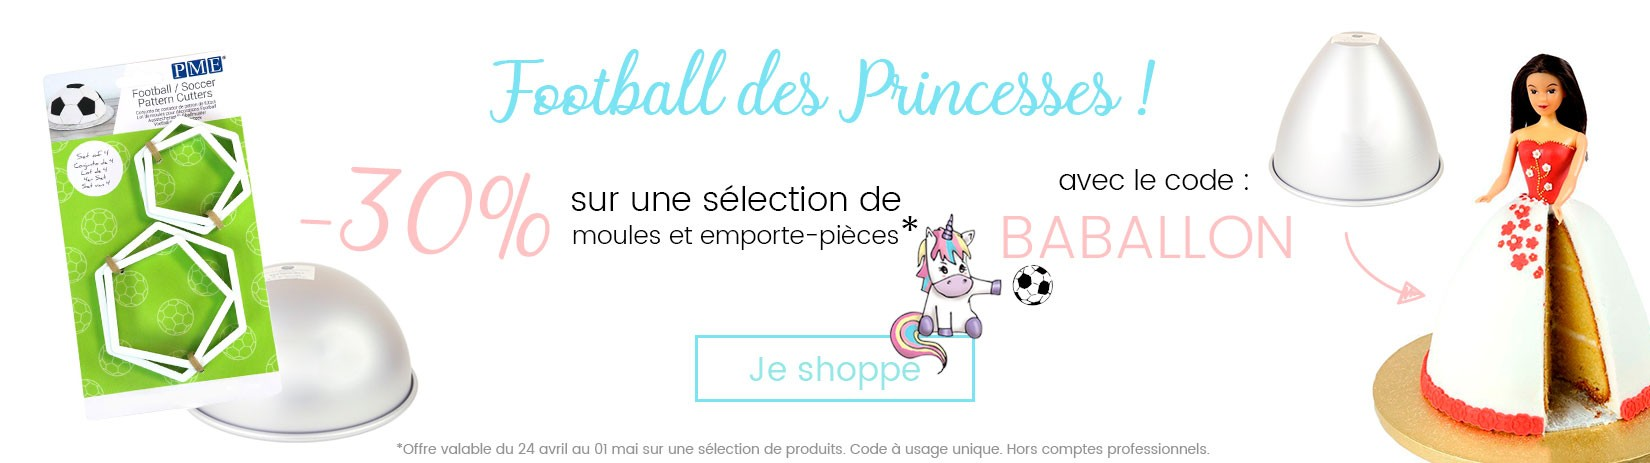 Promo Foot & Princesses